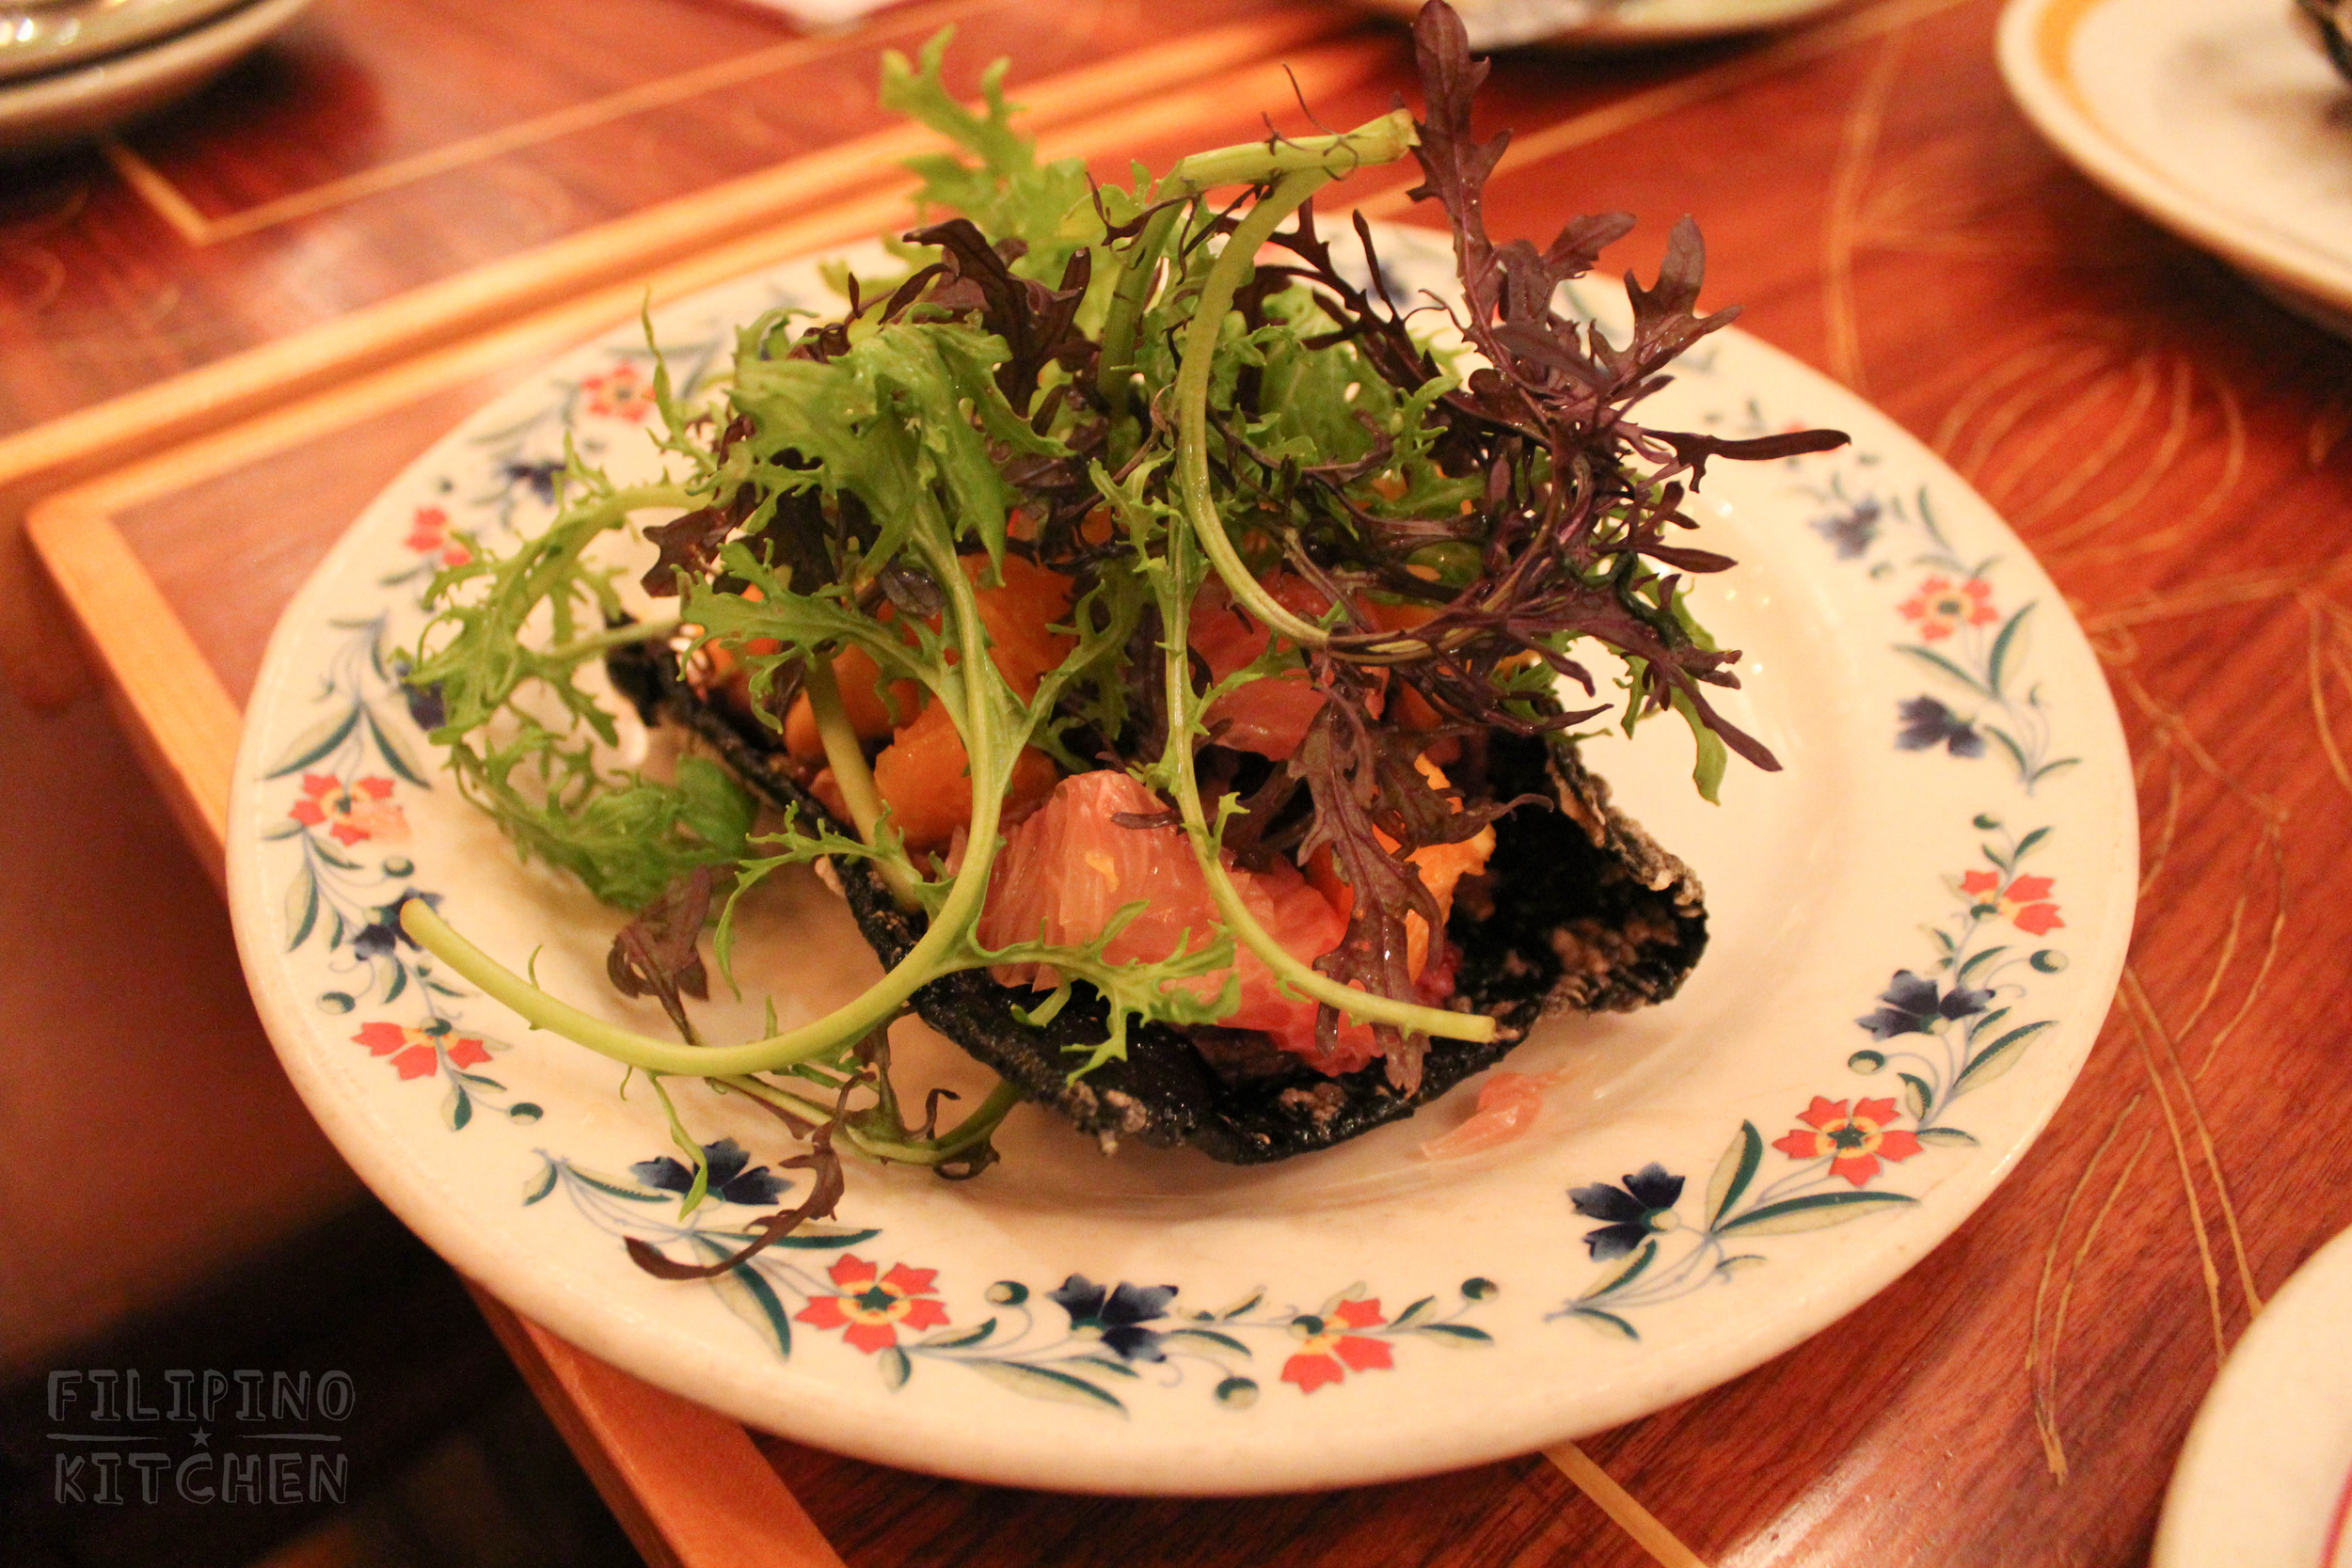 Taco Nori:beef tapa, fried garlic heirloom rice, pomelo, persimmons, oranges, spring mix nestled in a crispy nori (dried seaweed)